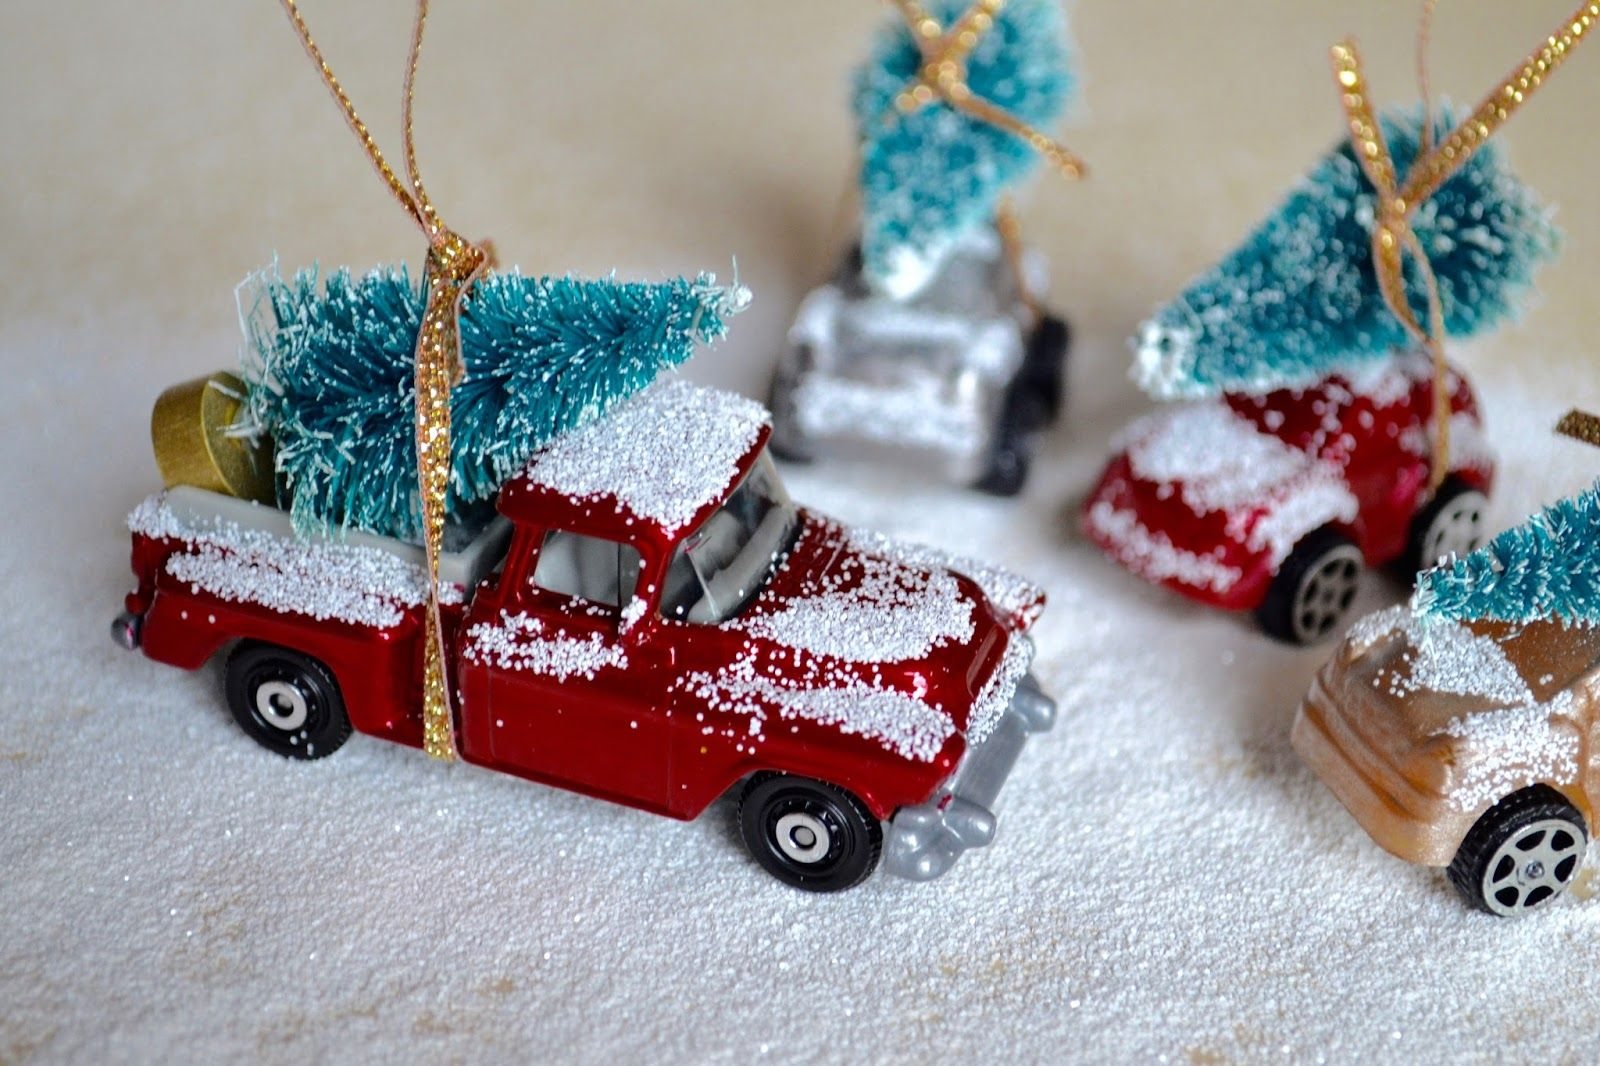 Diy Christmas Car Tree Decorations The Things She Makes Christmas Car Vintage Christmas Crafts Christmas Tree Toy